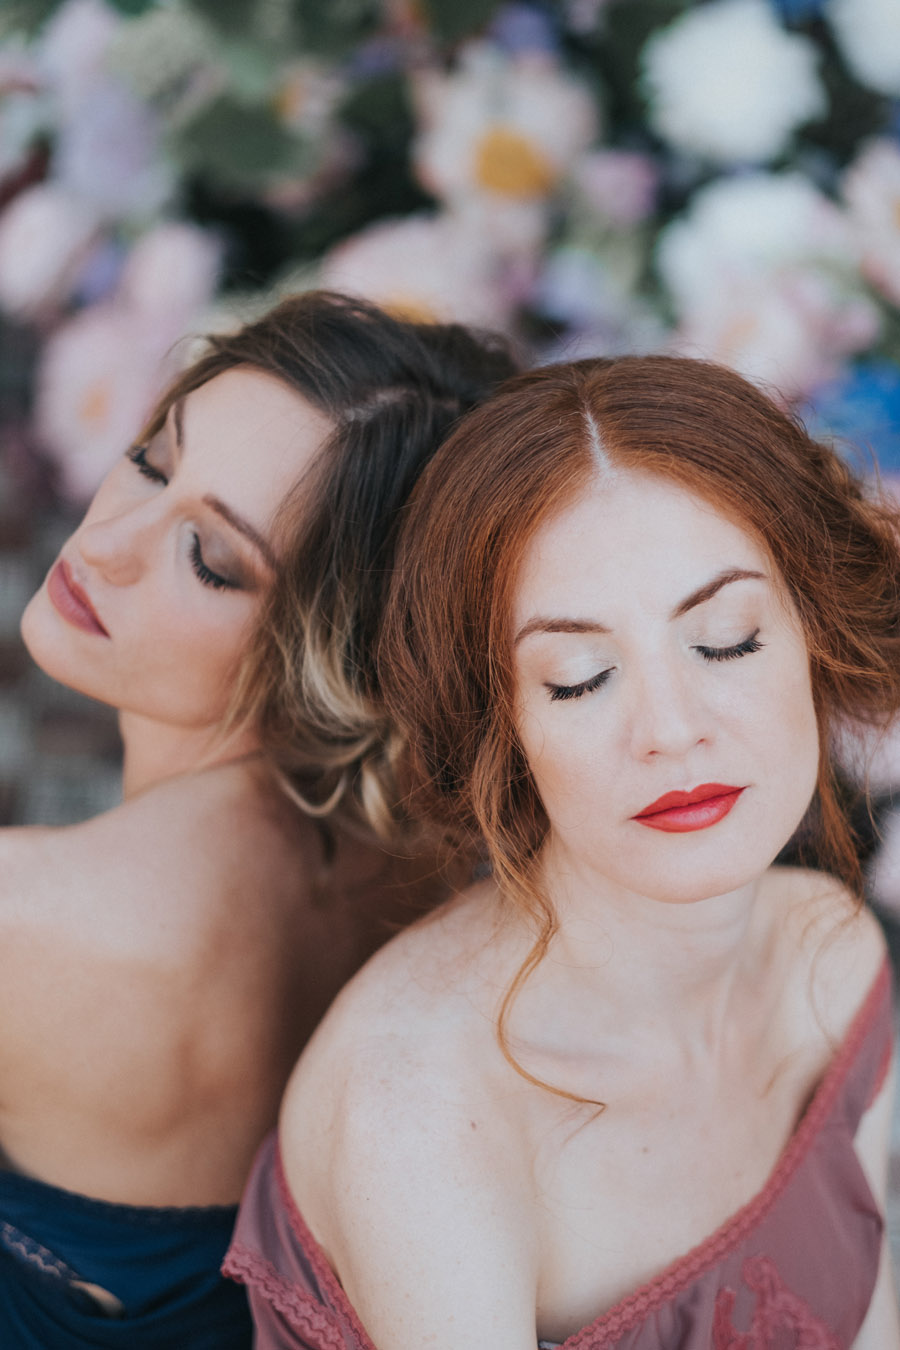 Art Nouveau Wedding Inspiration With Ethereal Vibes at Palazzo Arabesco, Italy